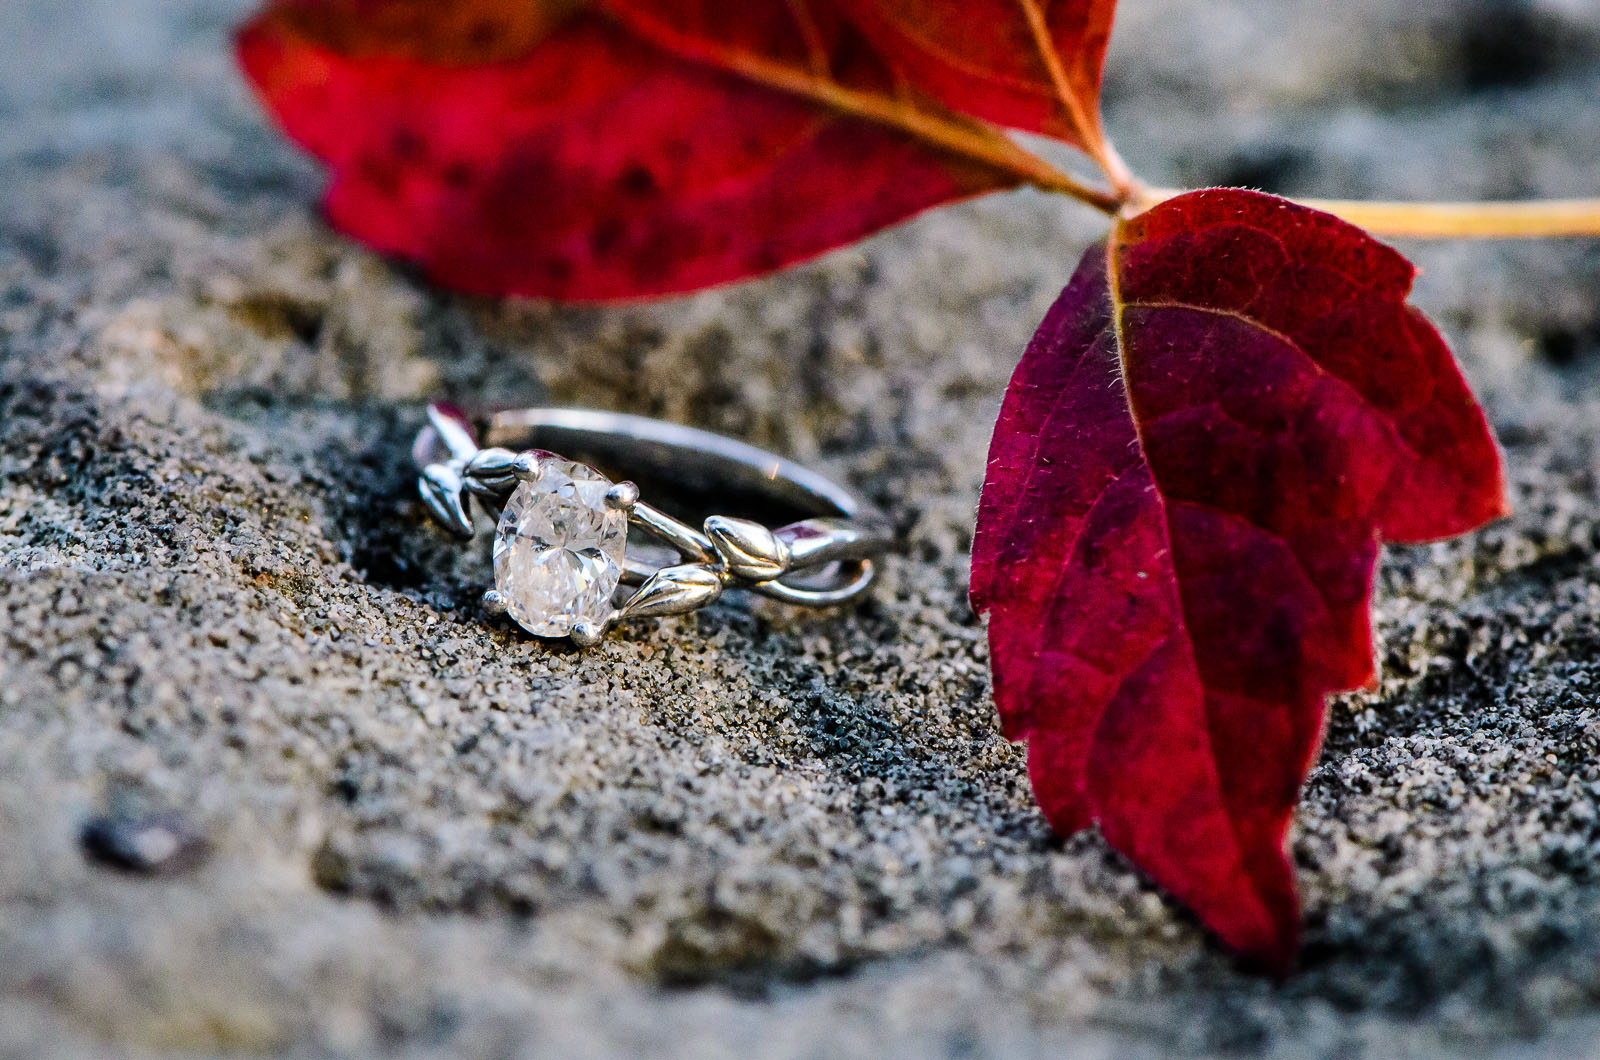 Eric_and_Christy_Photography_Blog_Stephanie_Nick_Engagement-19